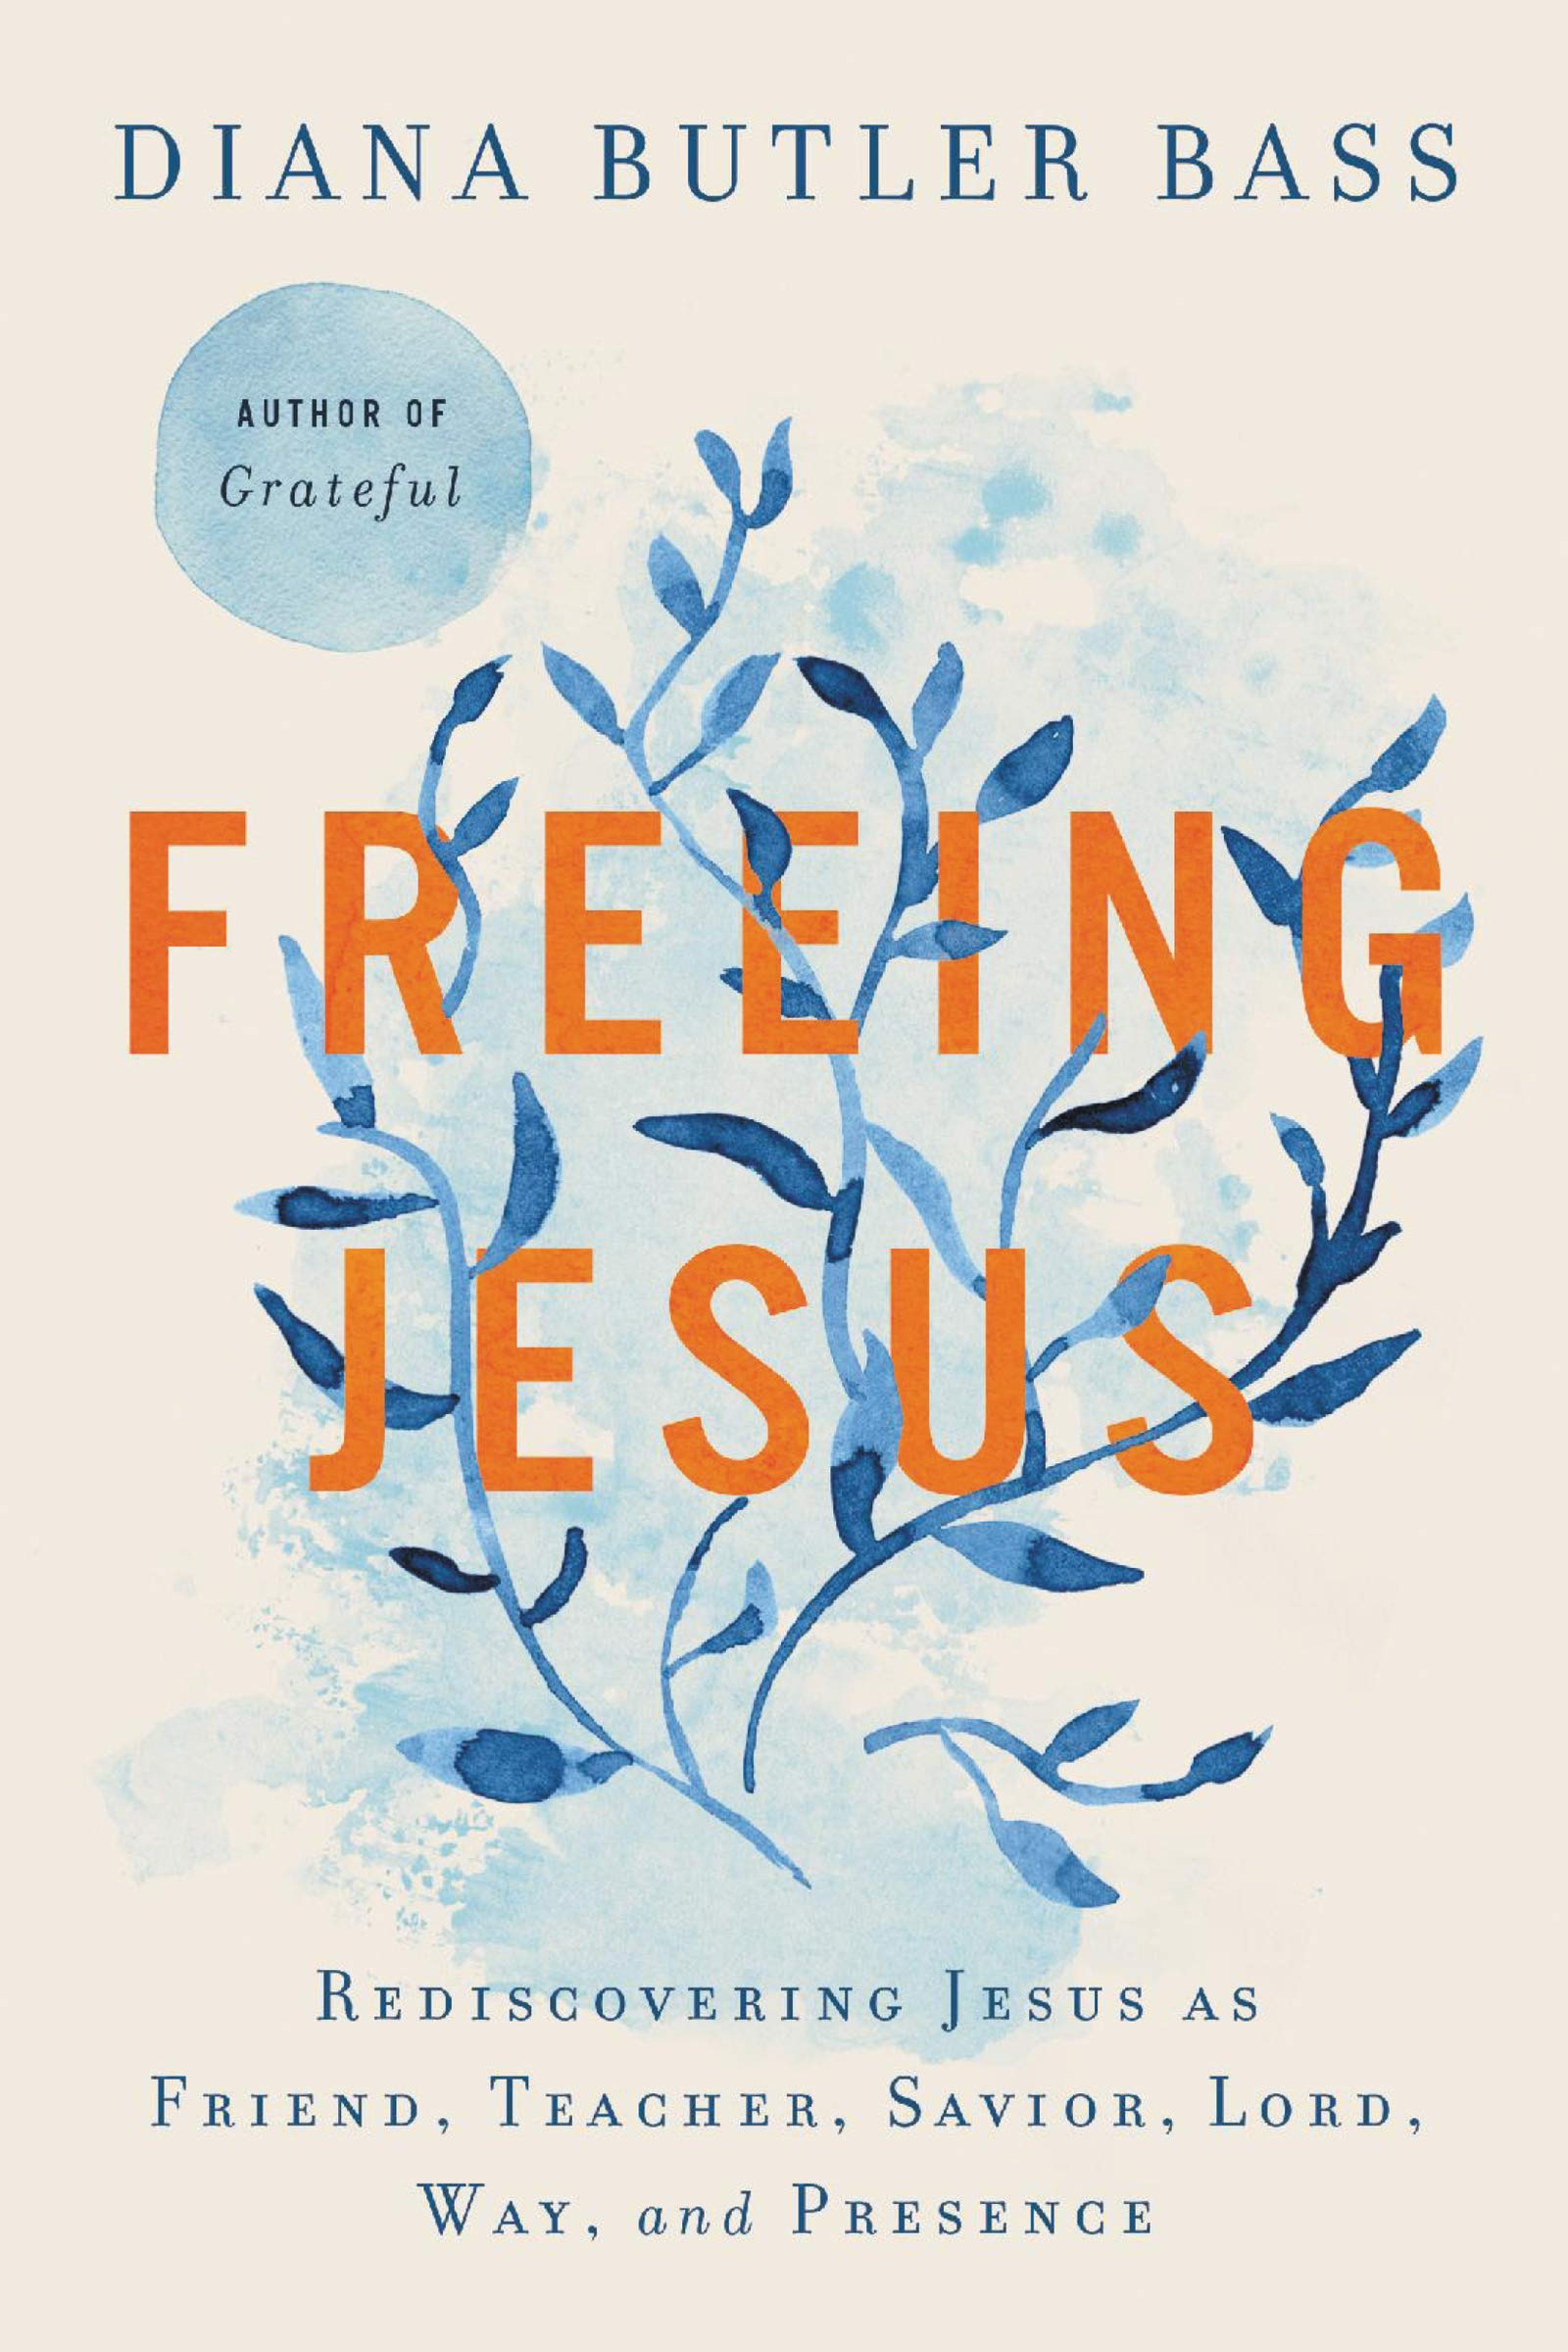 Freeing Jesus: Rediscovering Jesus as Friend, Teacher, Savior, Lord, Way, and Presence